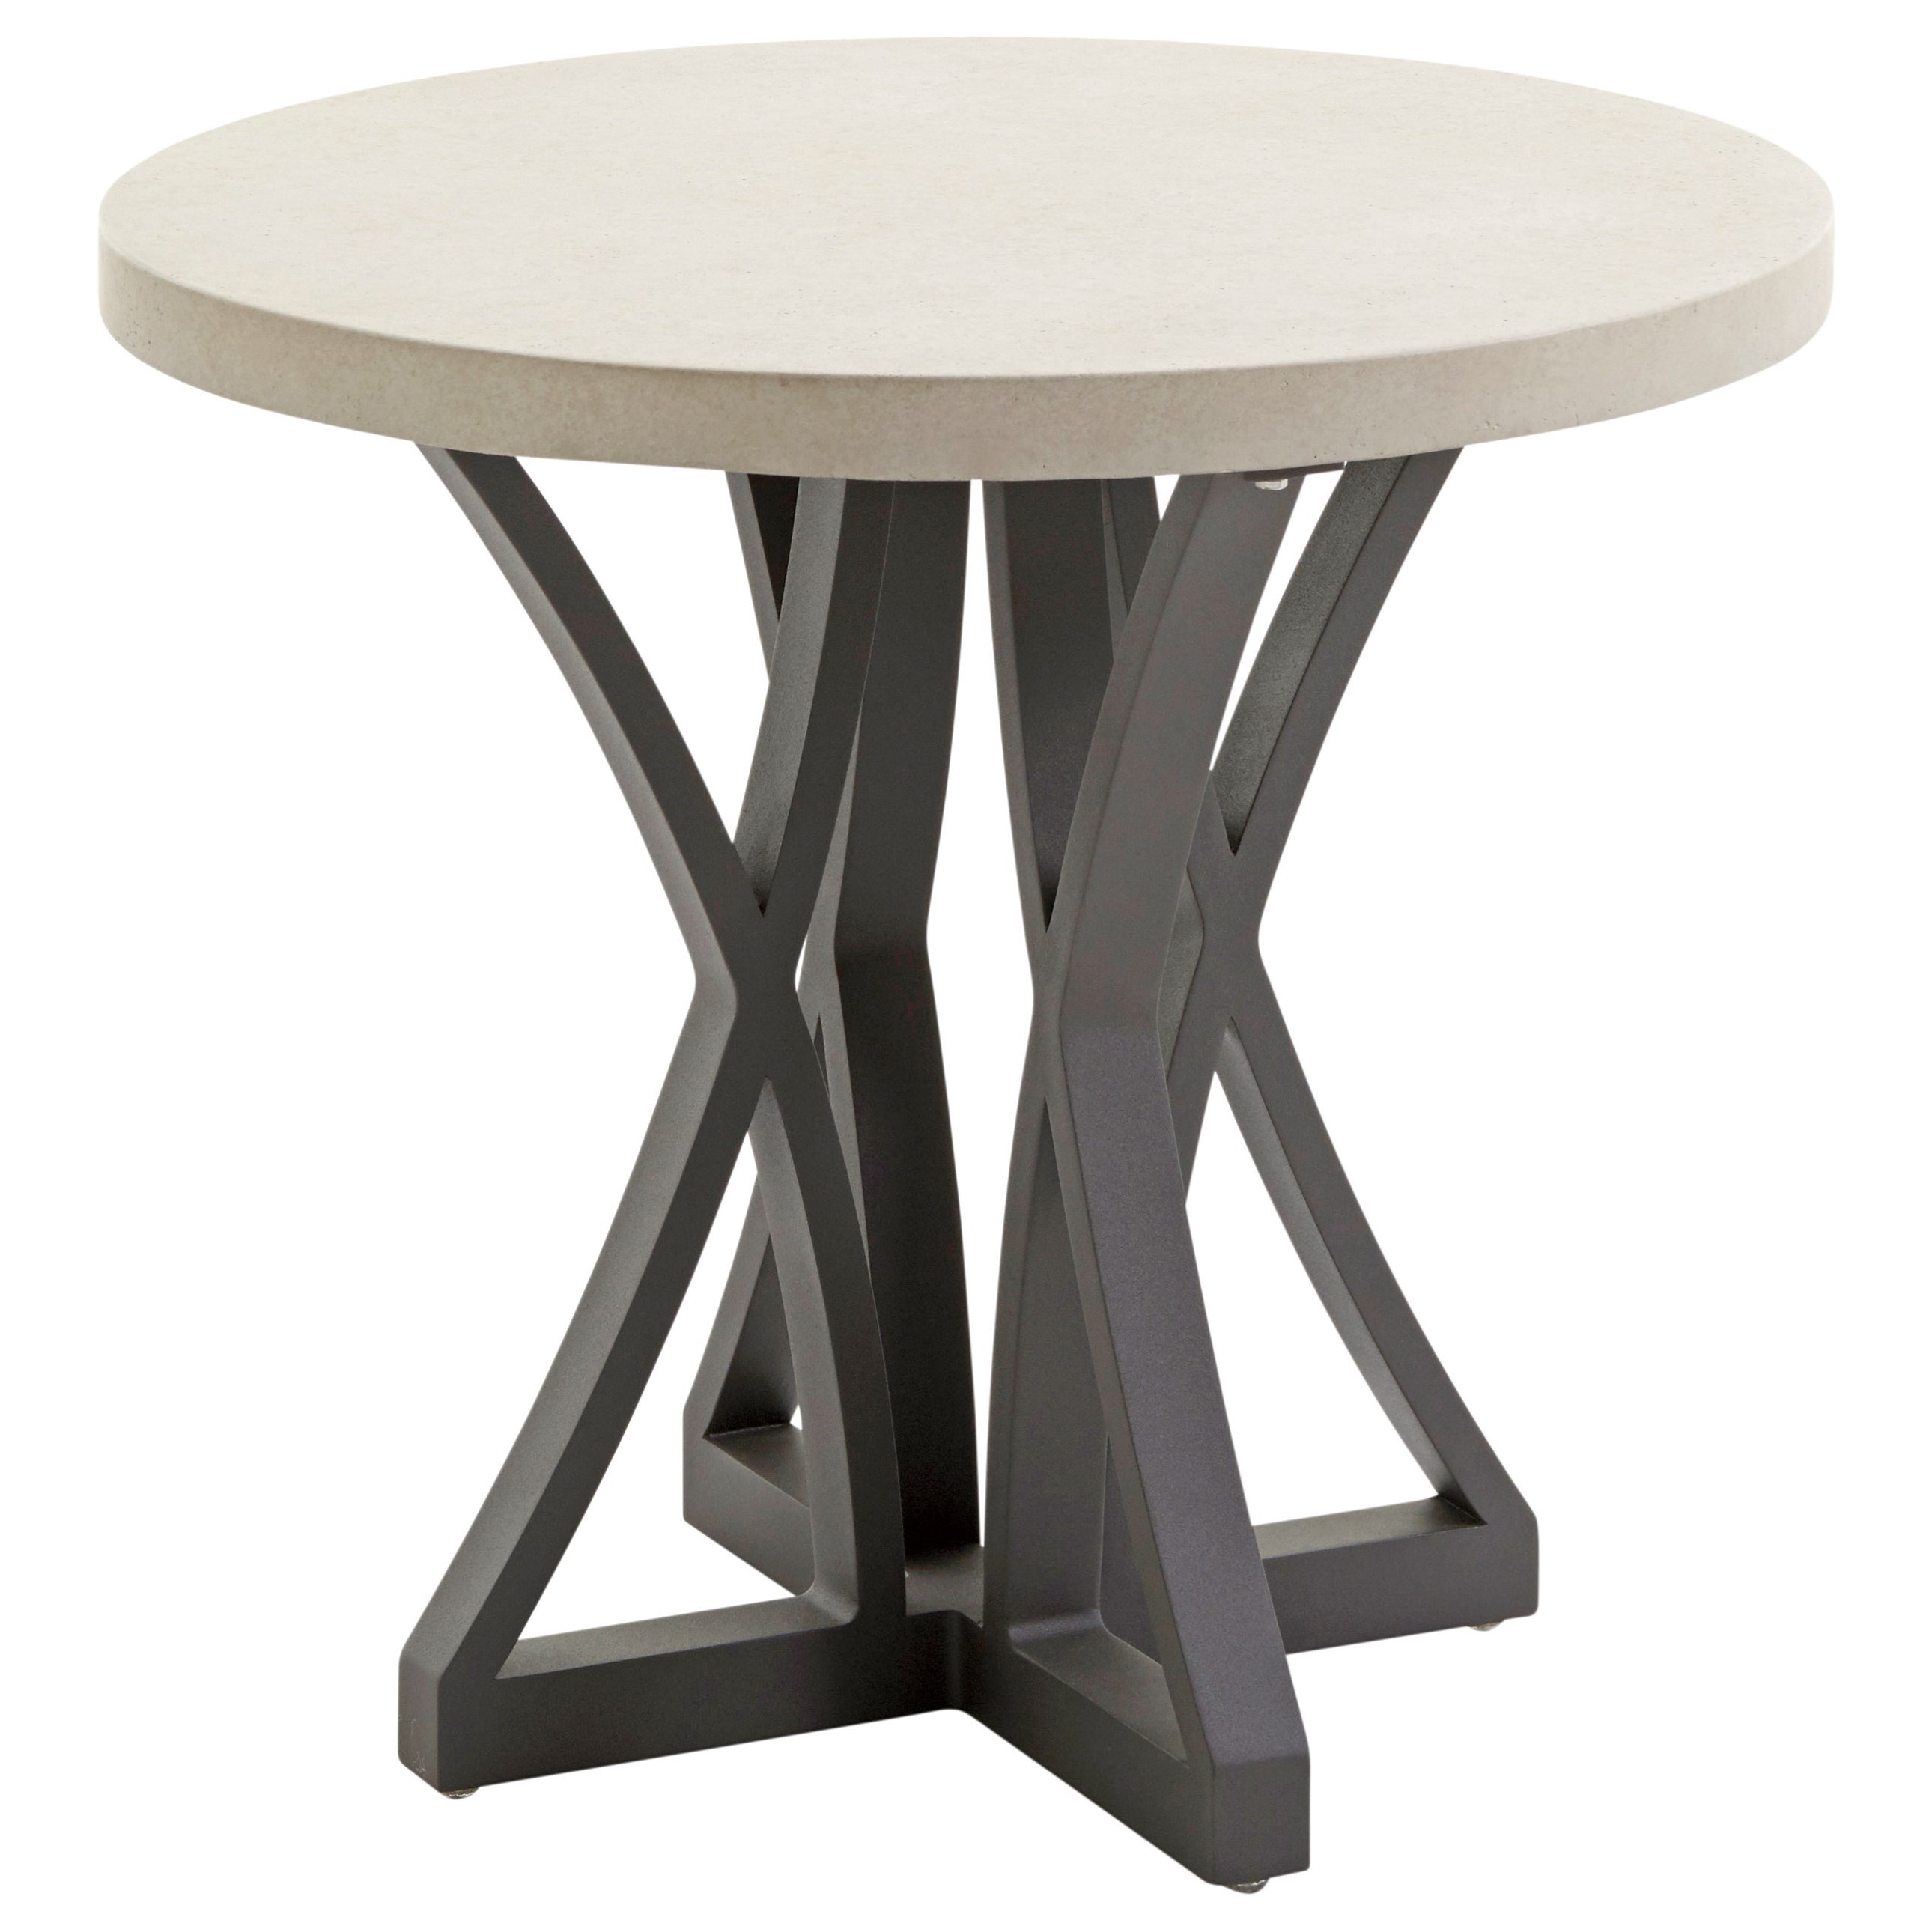 Cypress Point Ocean Terrace Outdoor Side Table with Weatherstone Top by Tommy Bahama Outdoor Living at Baer's Furniture